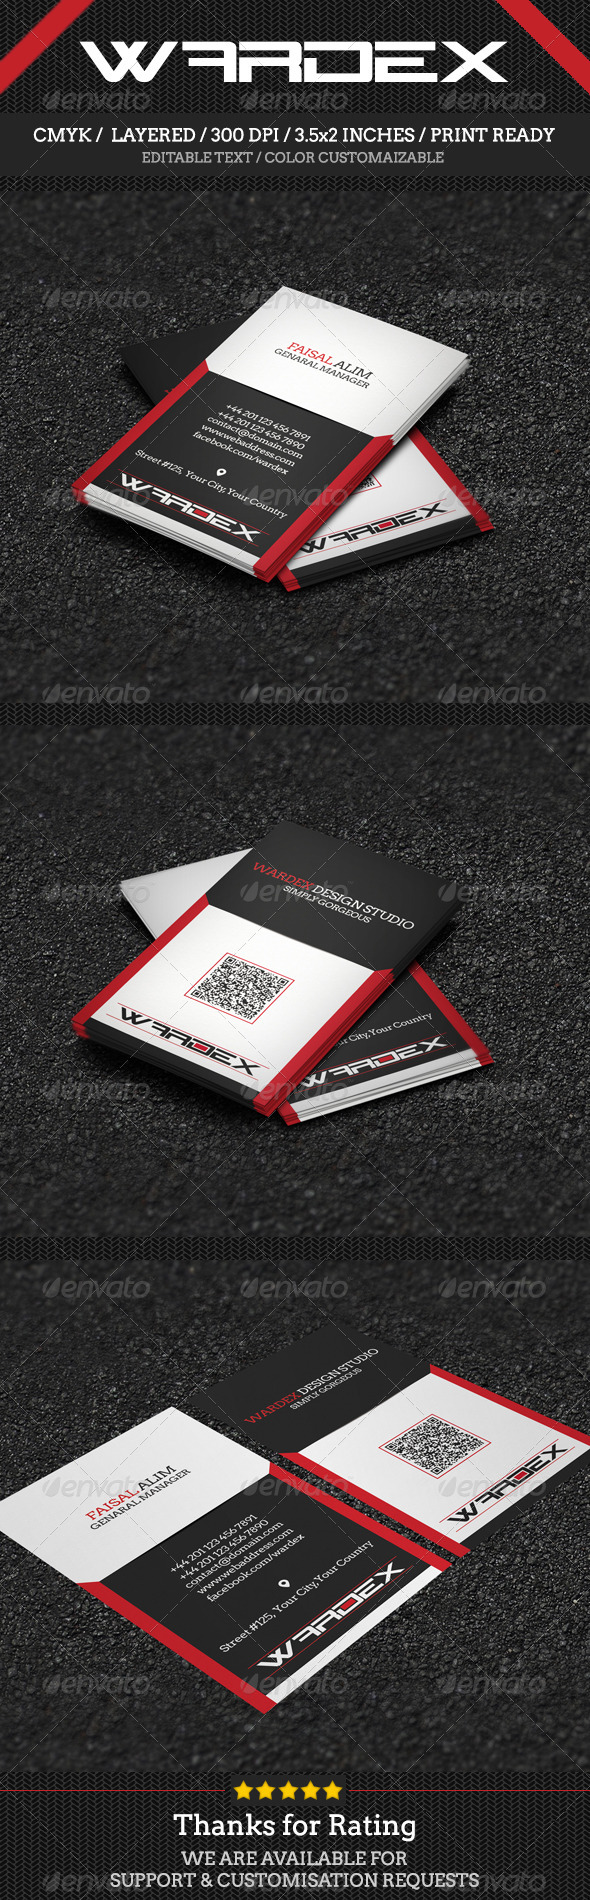 GraphicRiver Corporate & Pro Business Card Design 7246050